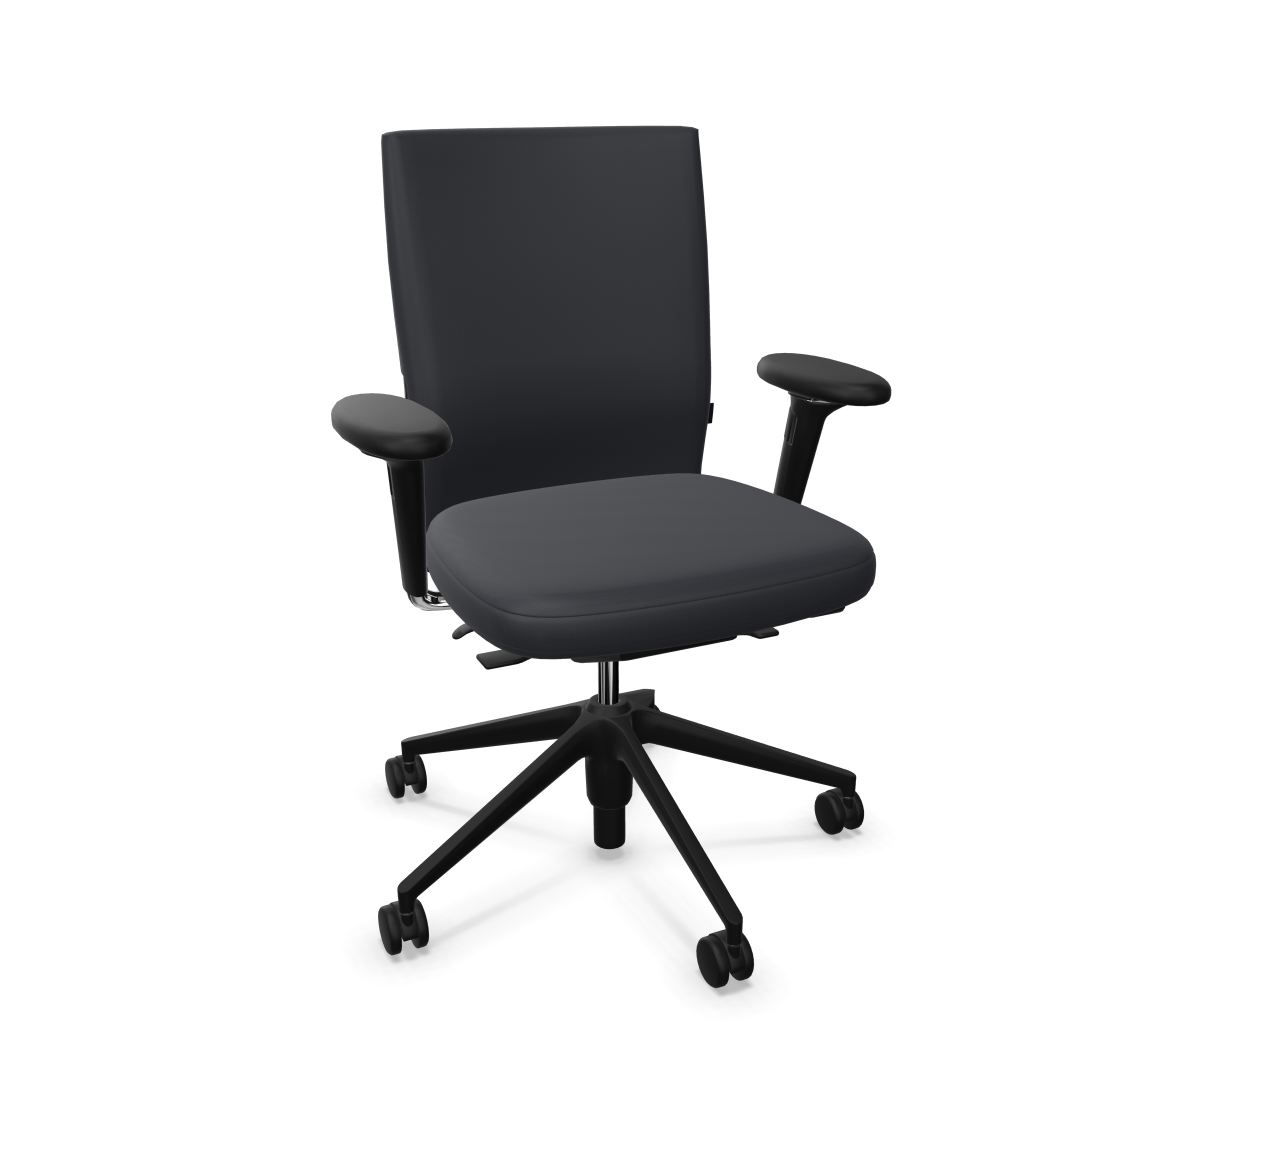 ID Chair - ID Soft - Black Special Edition - Swivel chair Vitra